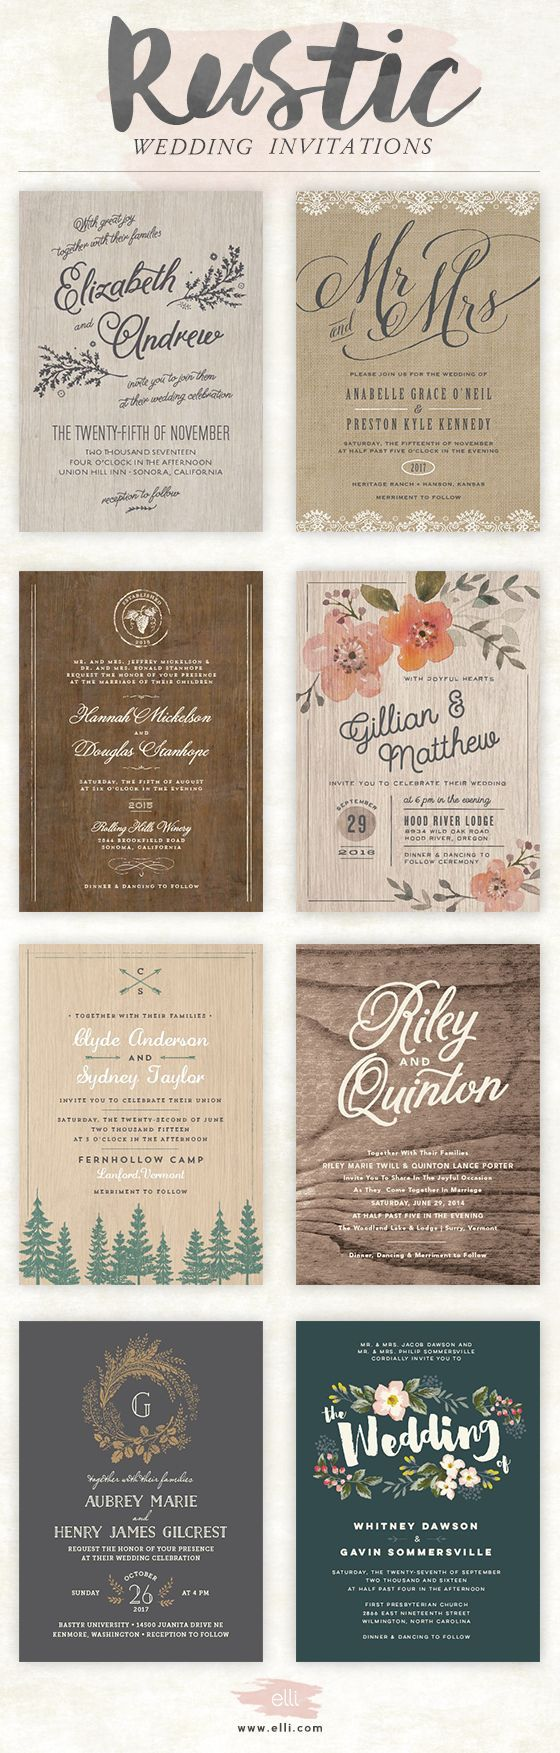 free wedding invitation psd%0A Rustic wedding invitations   bellacollina com   Bella Collina Weddings